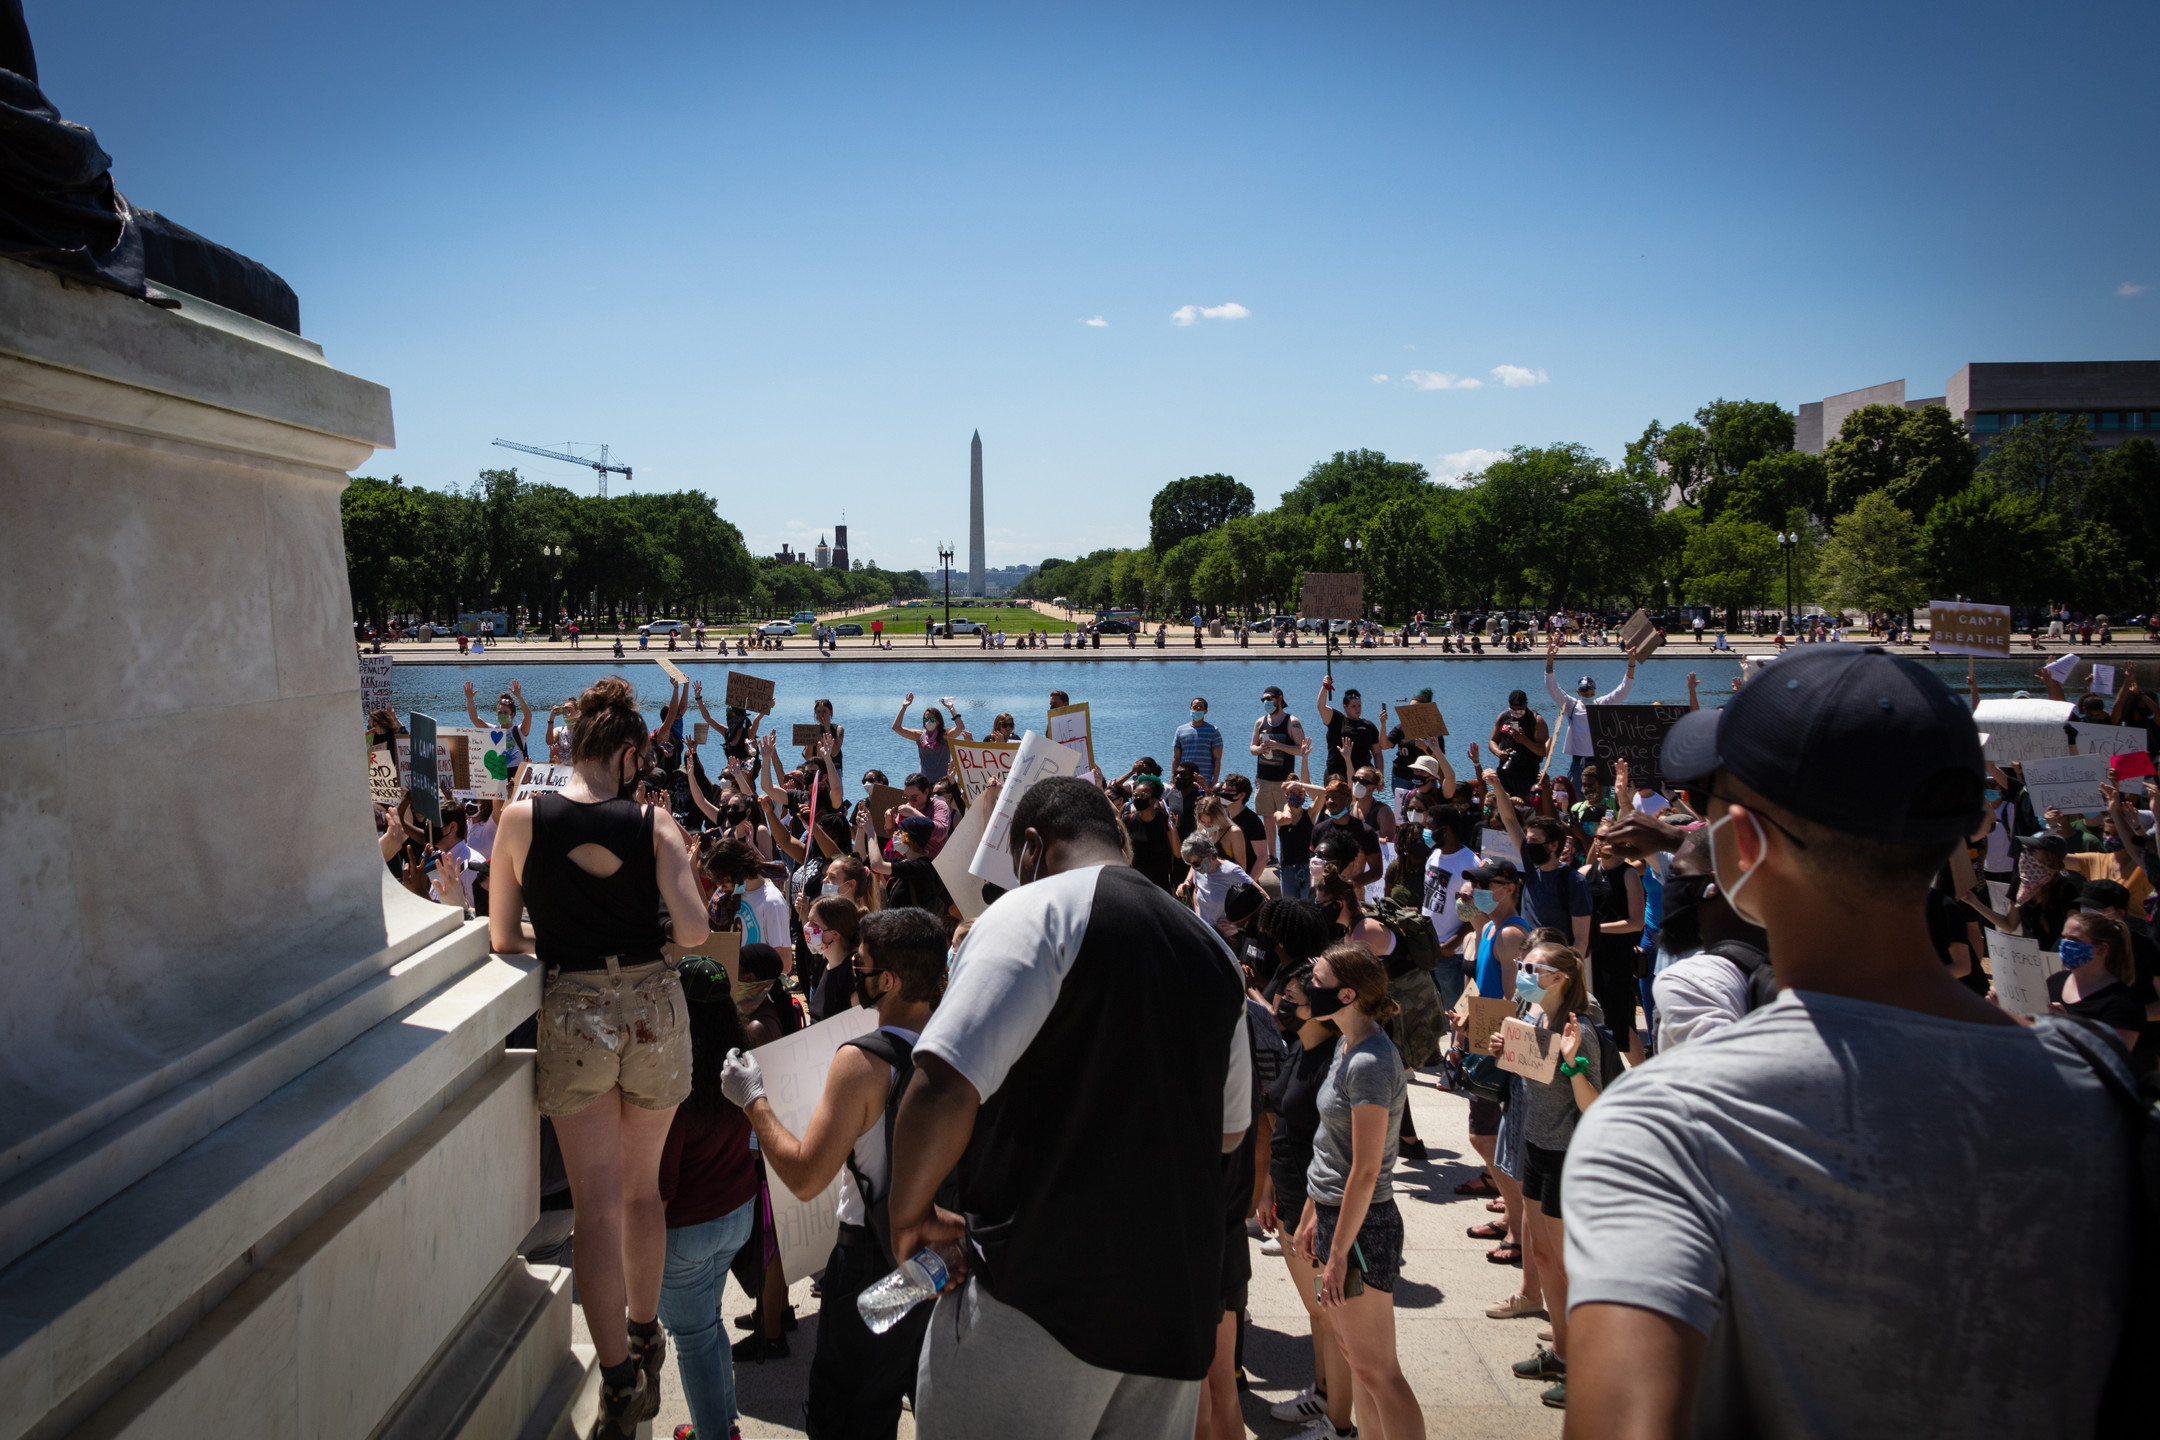 A crowd of protesters faces the Washington Monument from the steps of the United States Capitol in Washington, D.C., May 30, 2020.